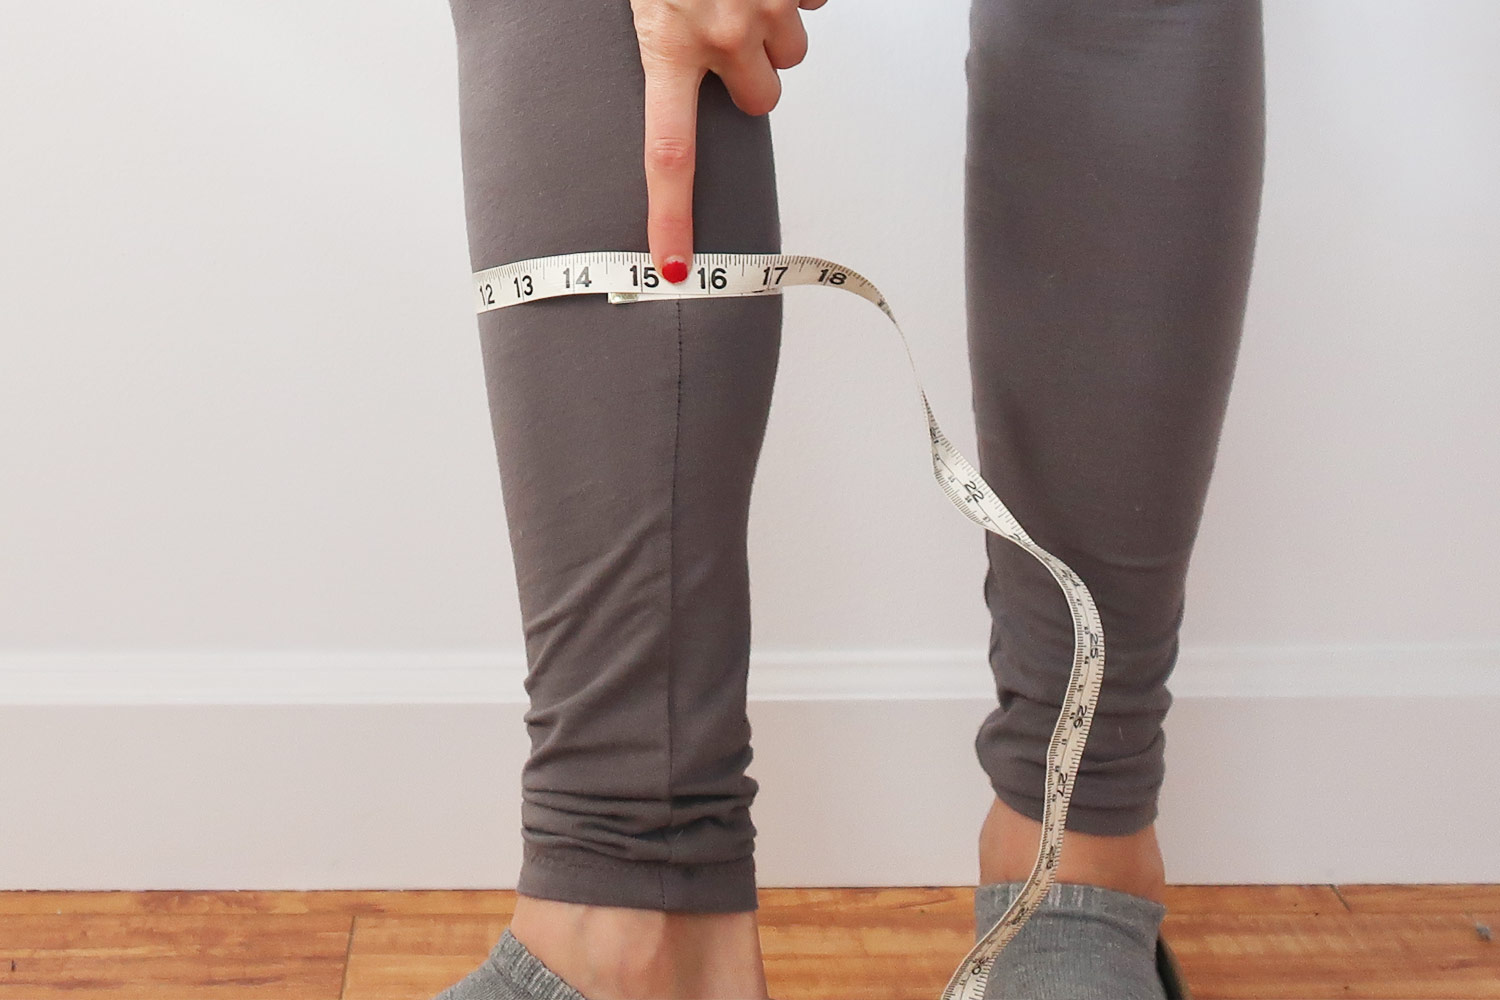 How to make a full calf adjustment   Sewing tutorial from Sew DIY